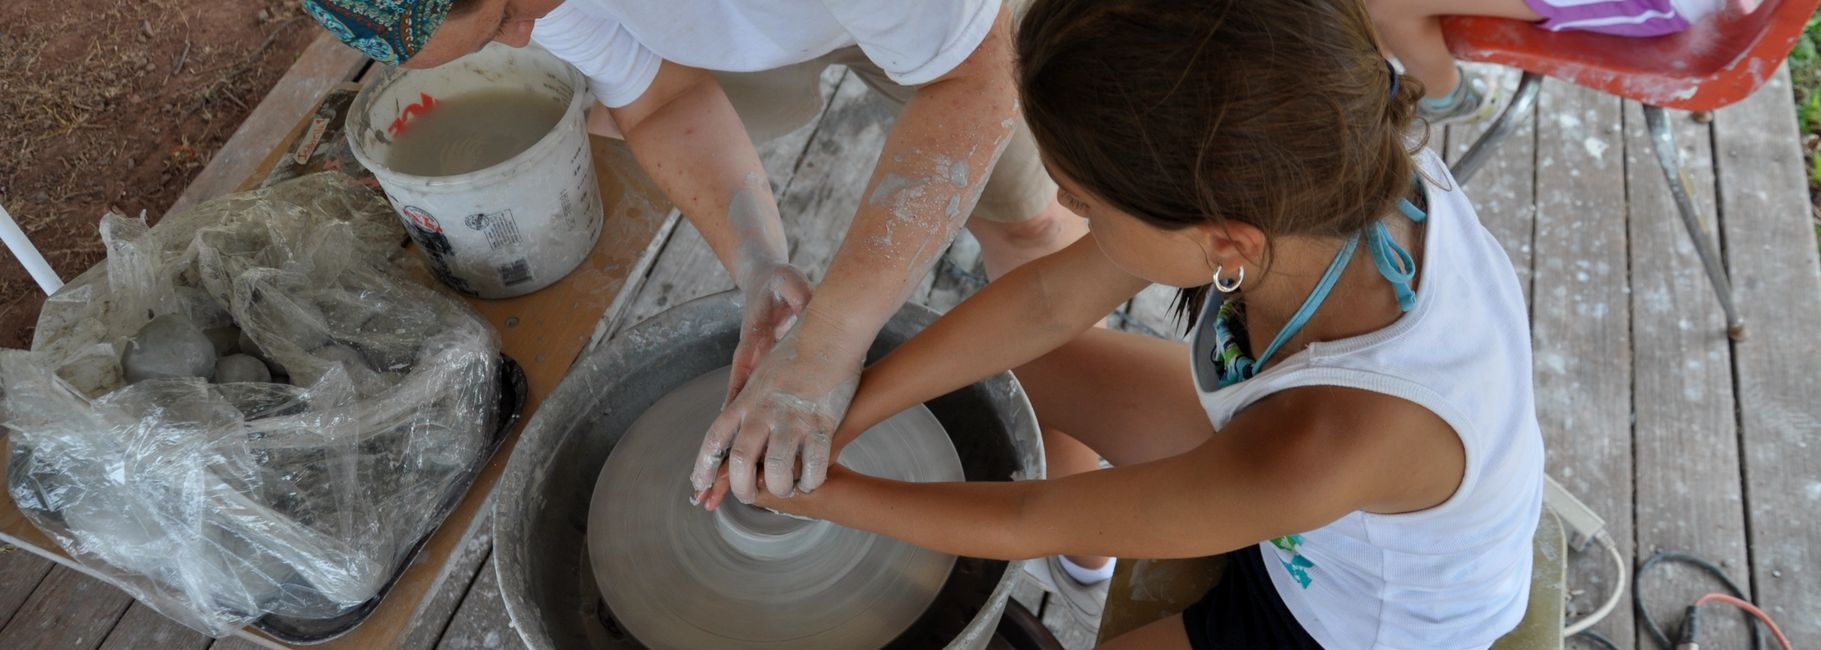 Summer camp pottery lessons near North Wales